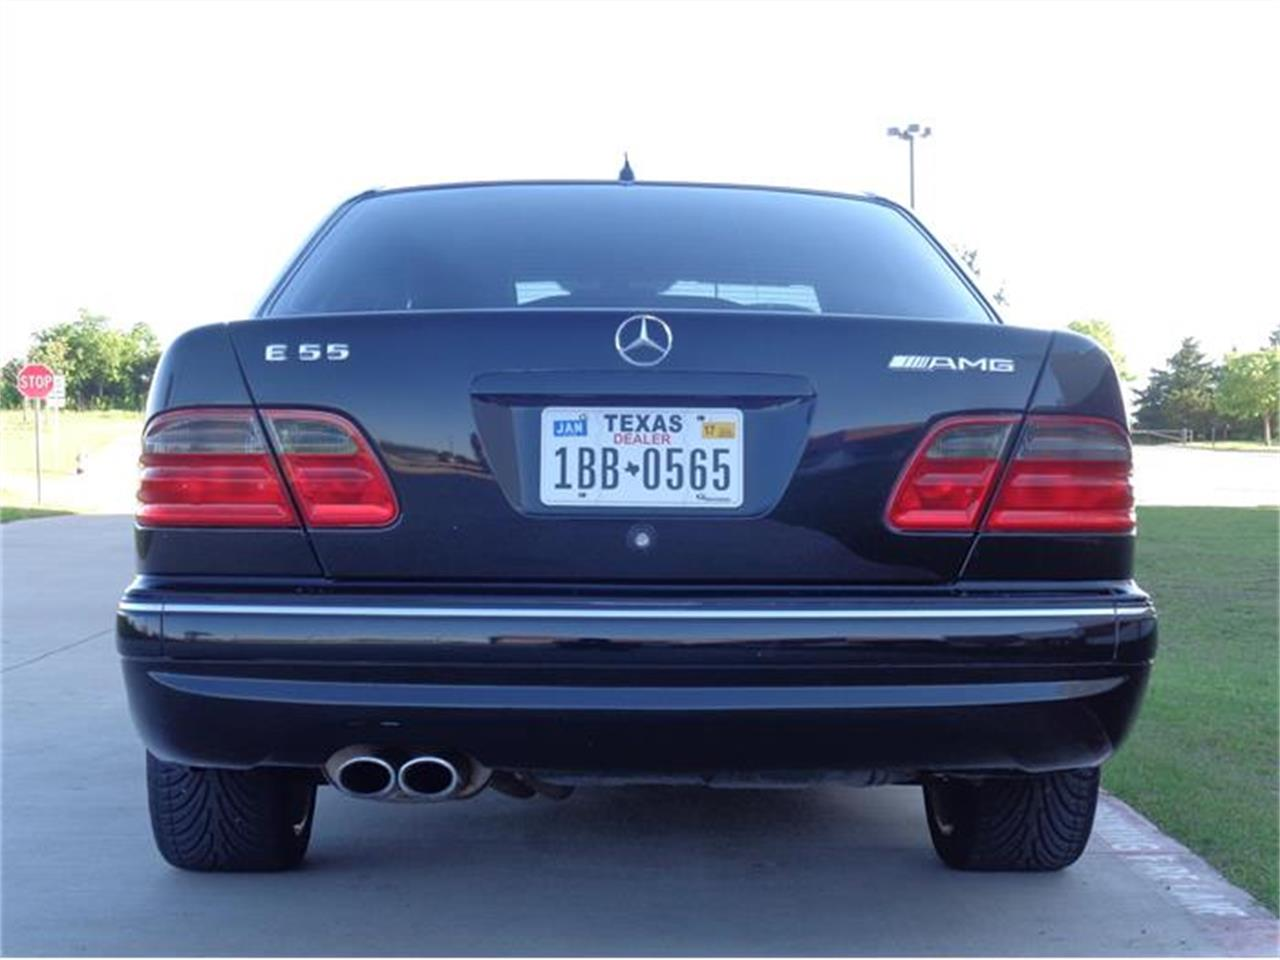 Large Picture of 2001 E55 located in Texas - $12,200.00 - HUJ9